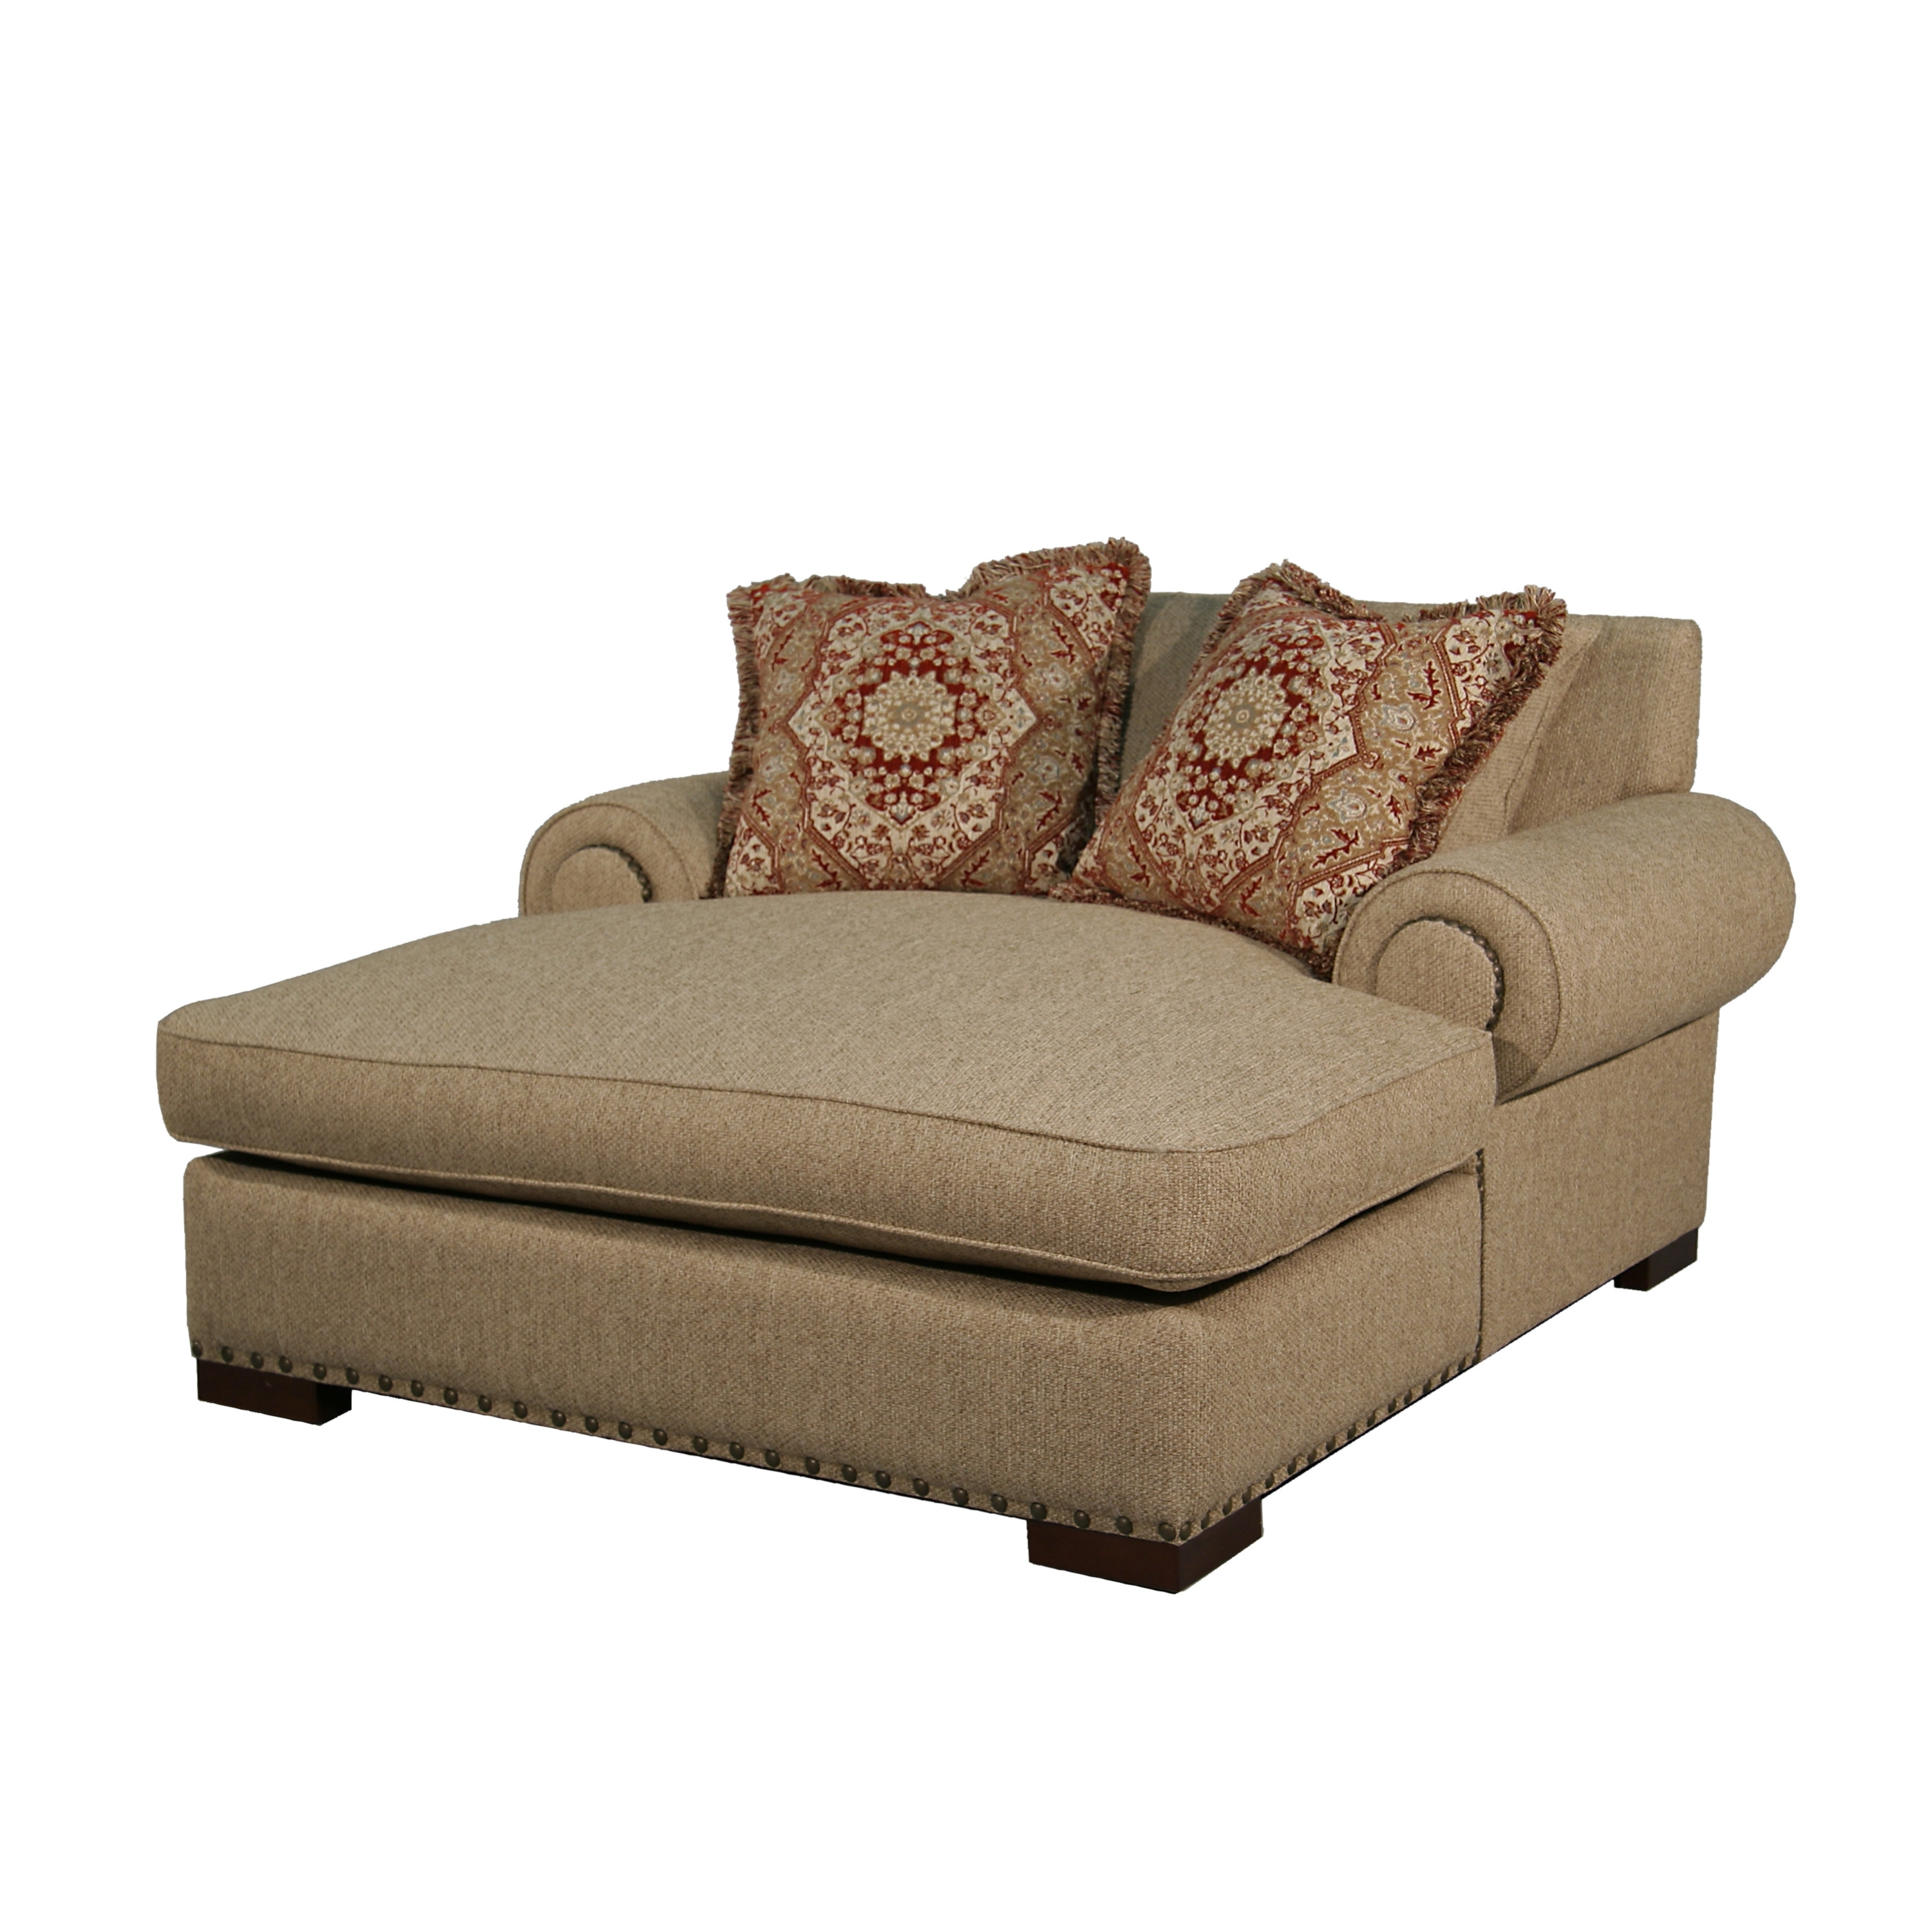 Chaise Lounge Chairs Two Arms • Lounge Chairs Ideas Pertaining To Popular Chaise Lounge Chairs With Two Arms (View 3 of 15)